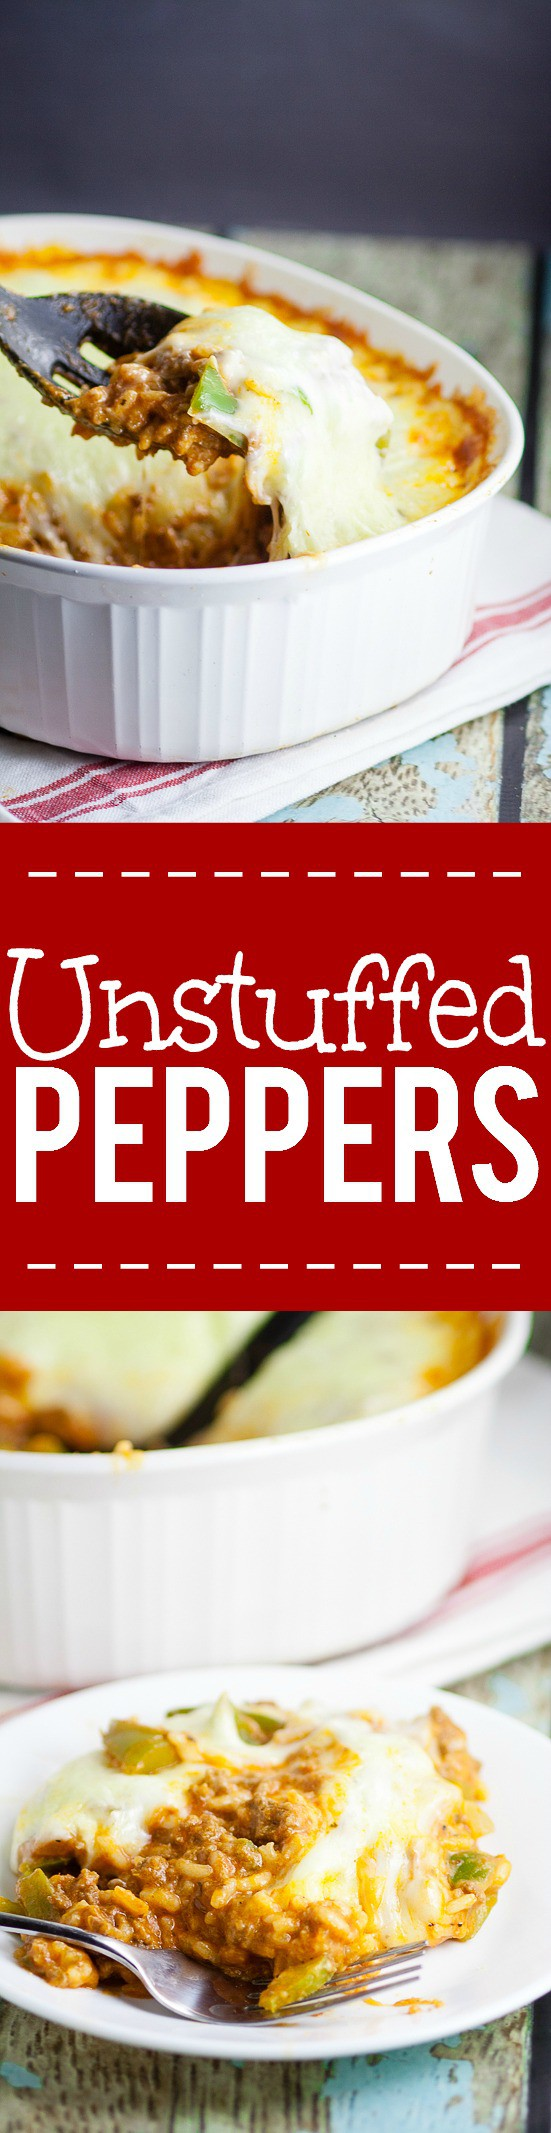 Unstuffed peppers recipe - Quick and easy, 30 minute, one pot dinner recipe. That's right. This simple family dinner recipe has it all!Get all the delicious comforting flavor you love in classic stuffed peppers in just 30 minutes with this equally yummy but twice as easy Unstuffed Peppers recipe.